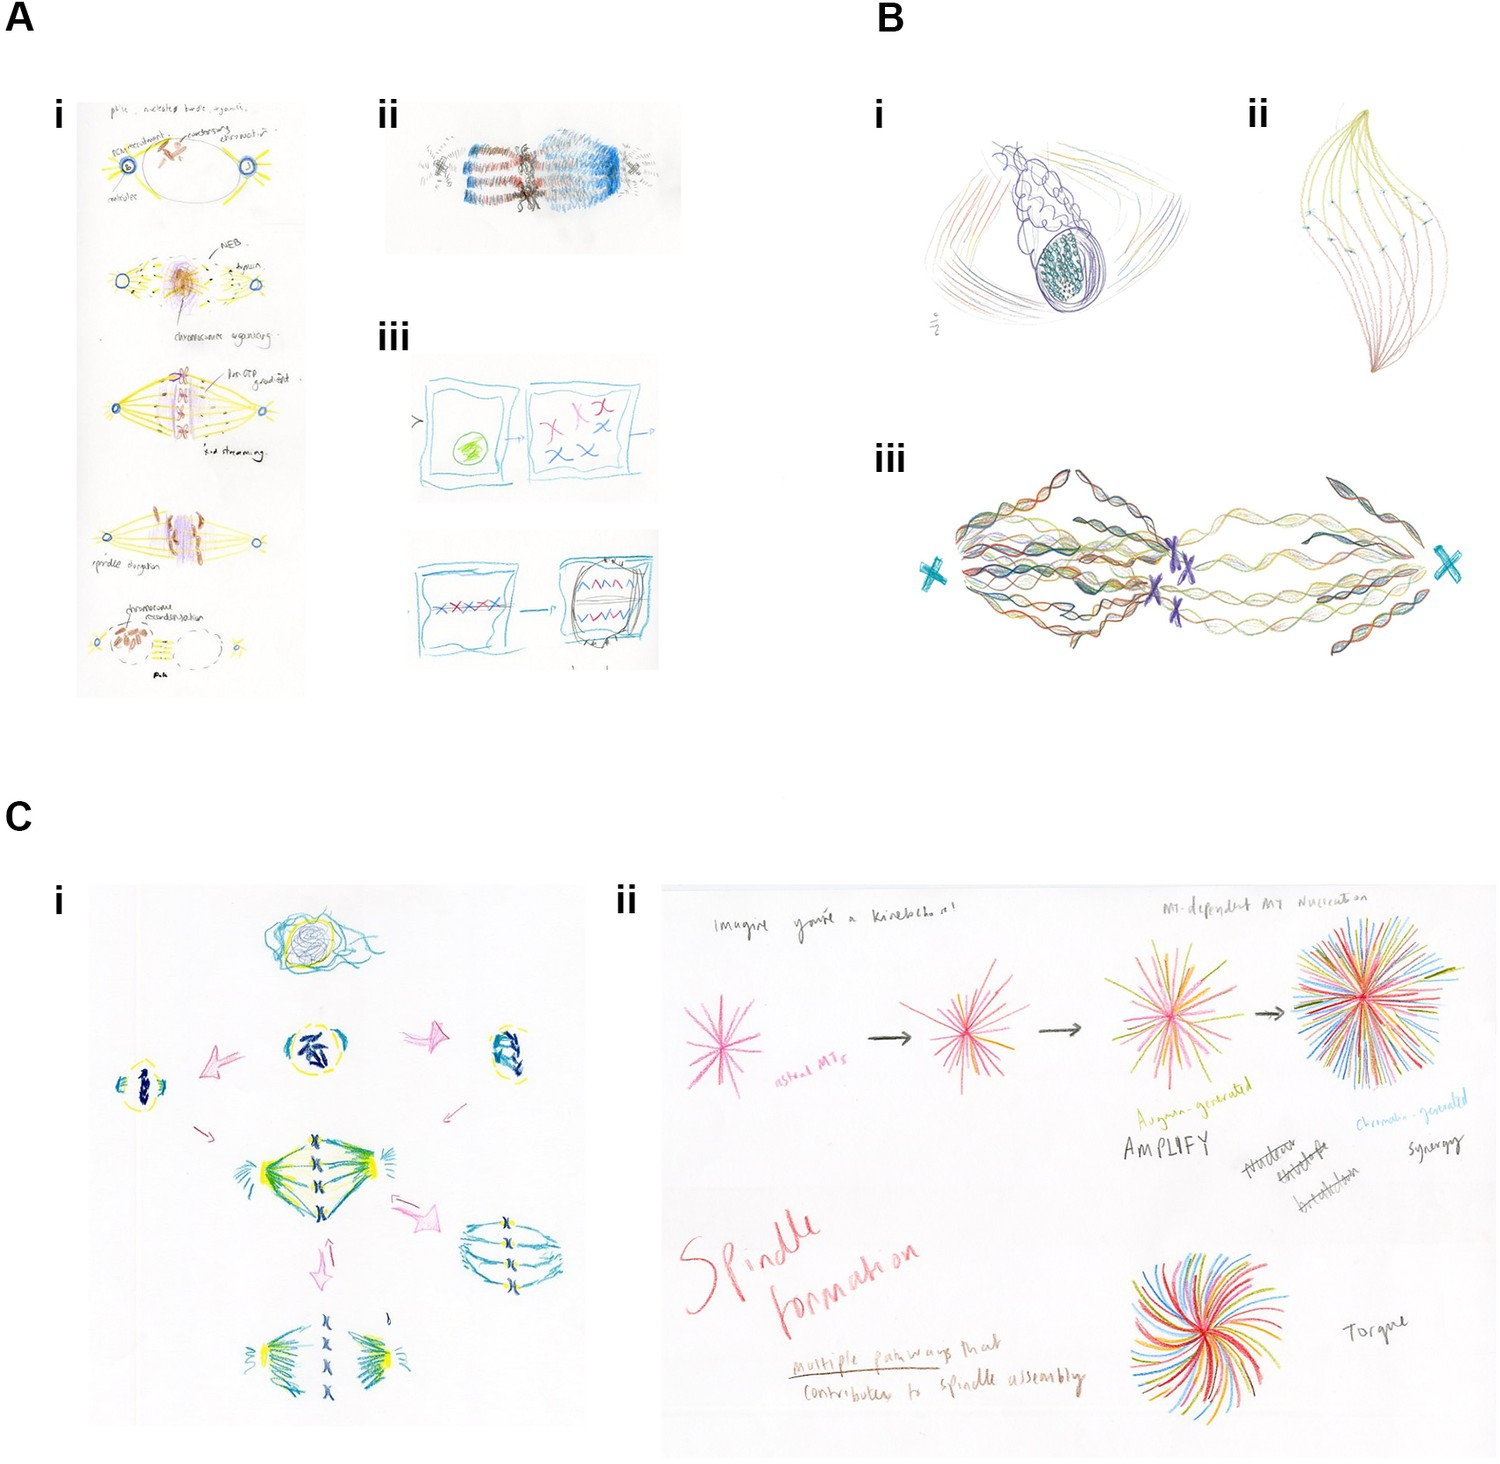 Philosophy of Biology: Drawing and the dynamic nature of